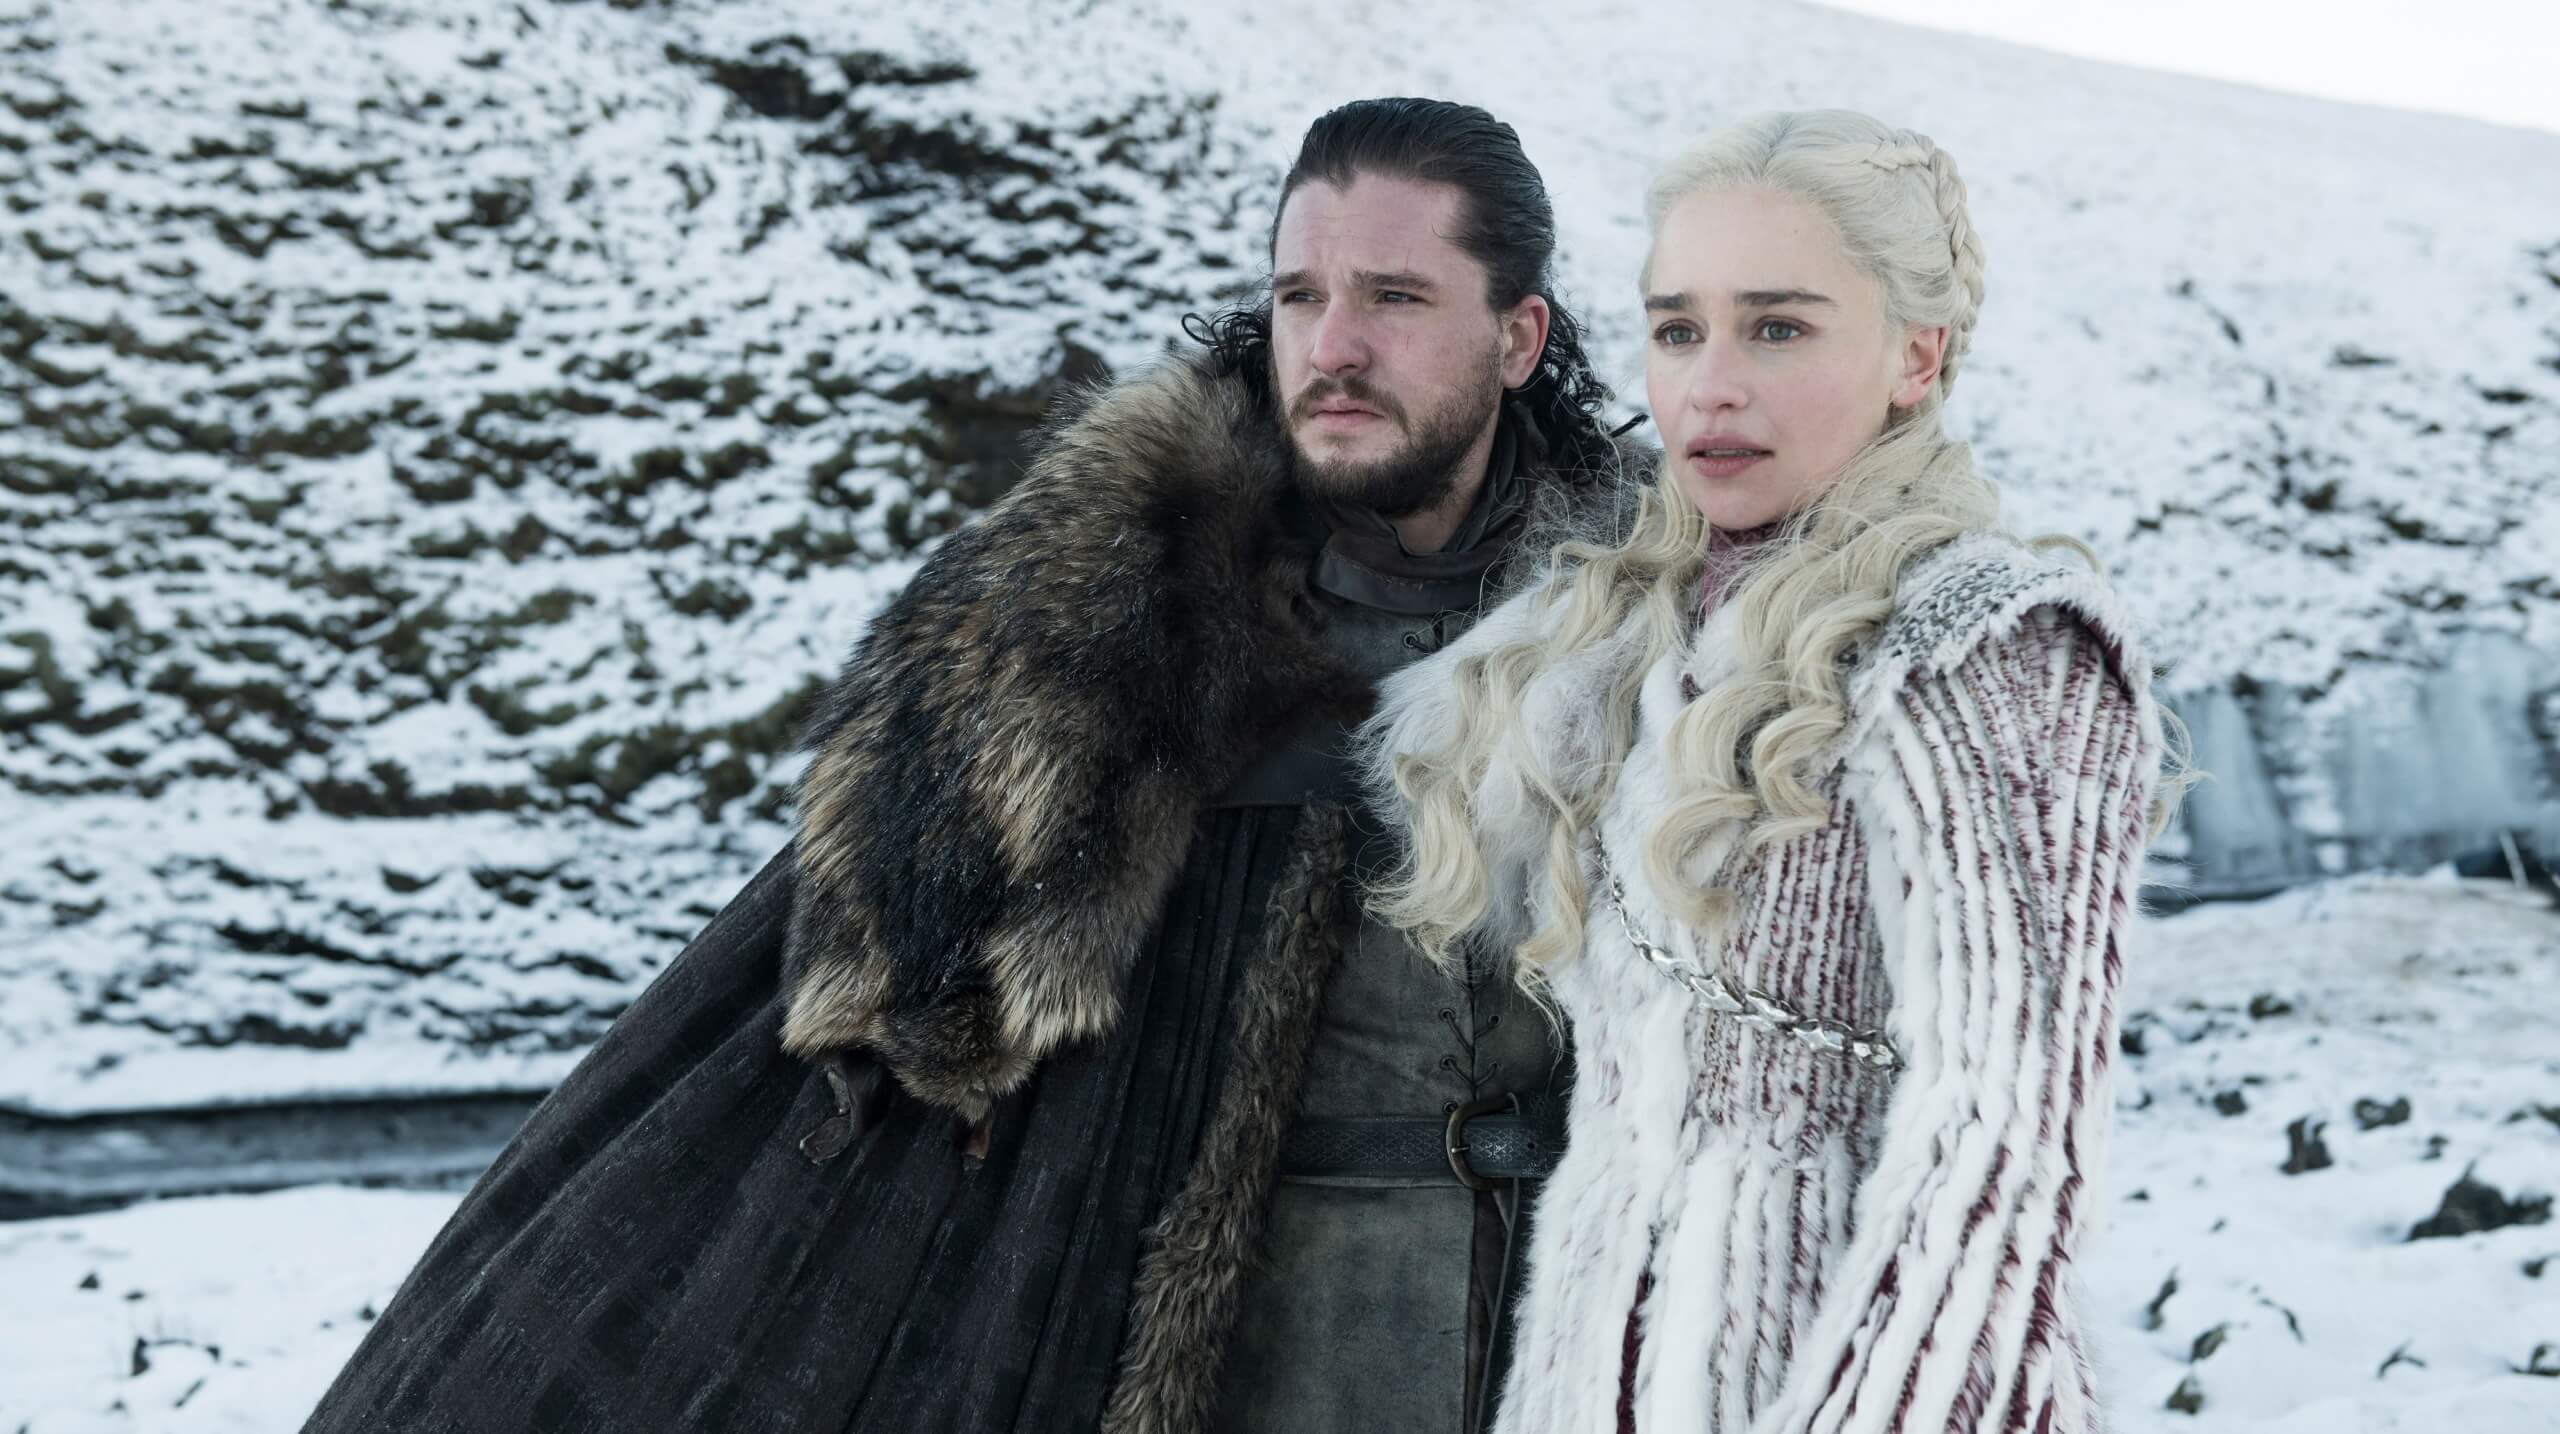 Game of Thrones is over: Fans react on Twitter, season 8 remake petition passes a million signatures